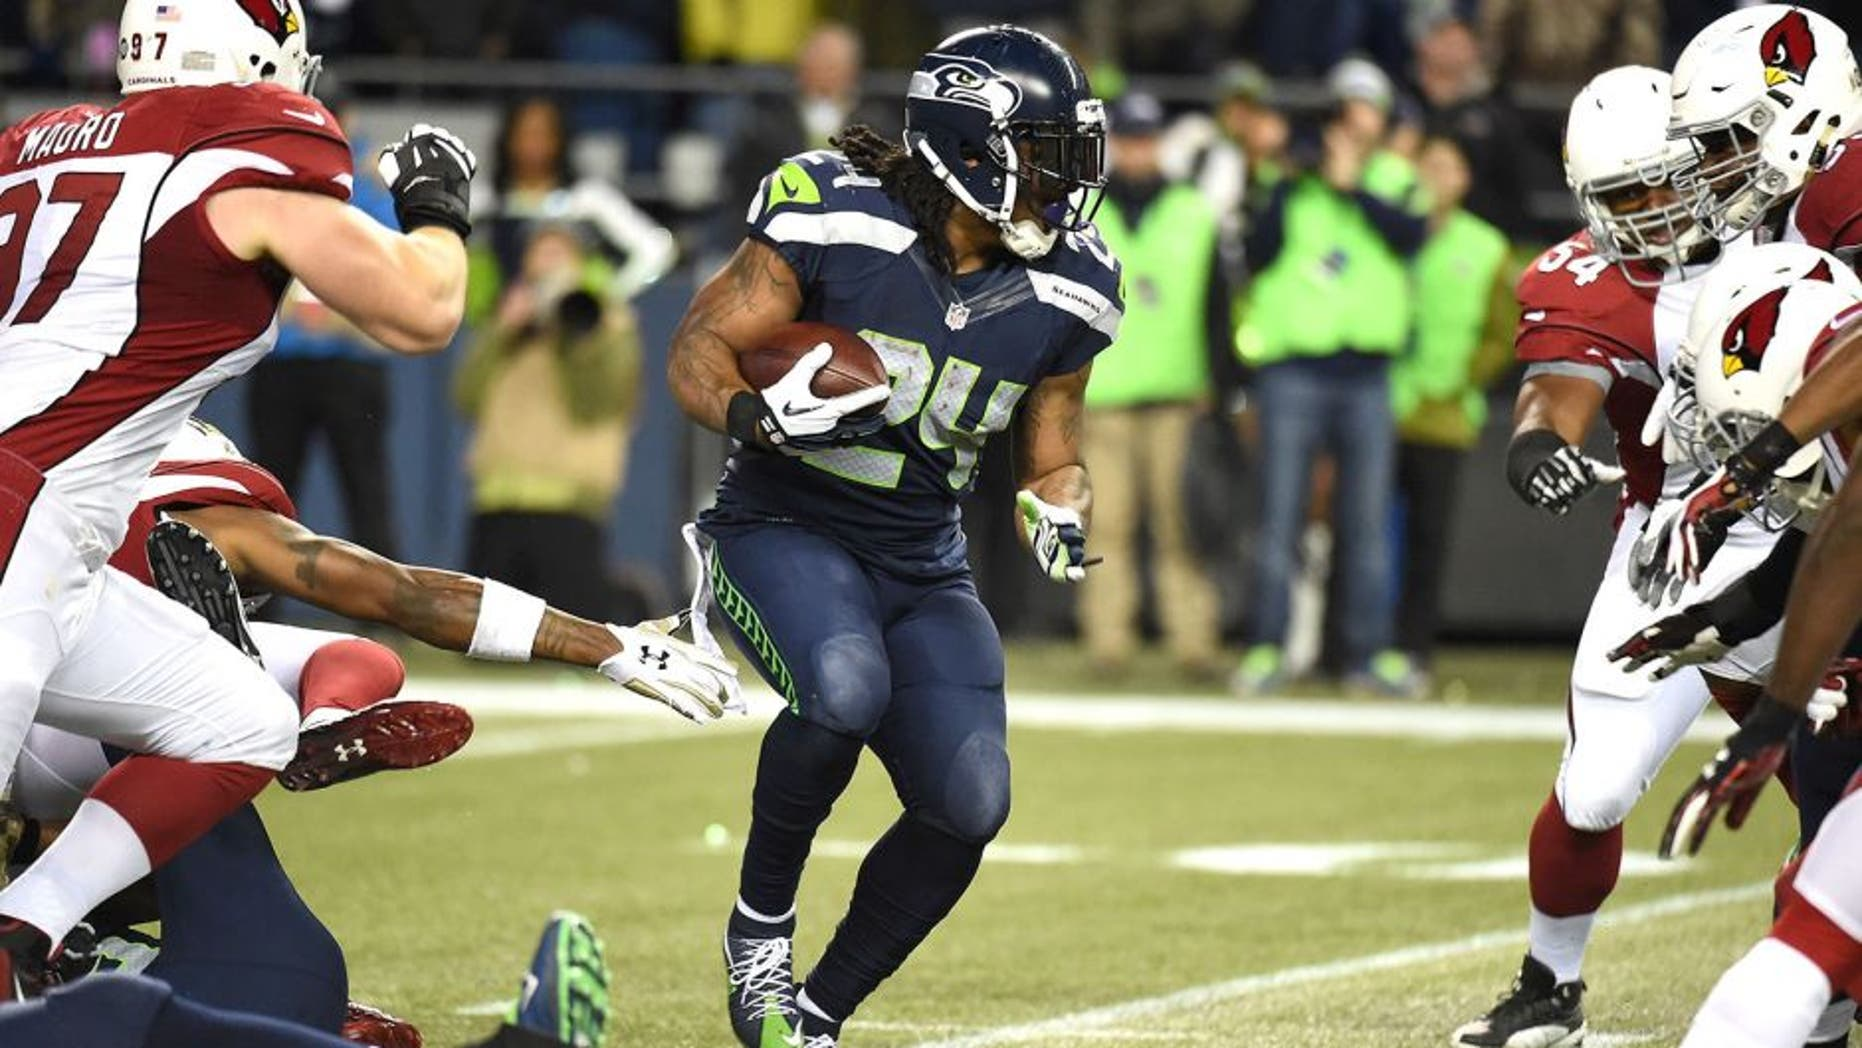 SEATTLE, WA - NOVEMBER 15: Marshawn Lynch #24 of the Seattle Seahawks carries the ball during the first half against the Arizona Cardinals at CenturyLink Field on November 15, 2015 in Seattle, Washington. (Photo by Steve Dykes/Getty Images)